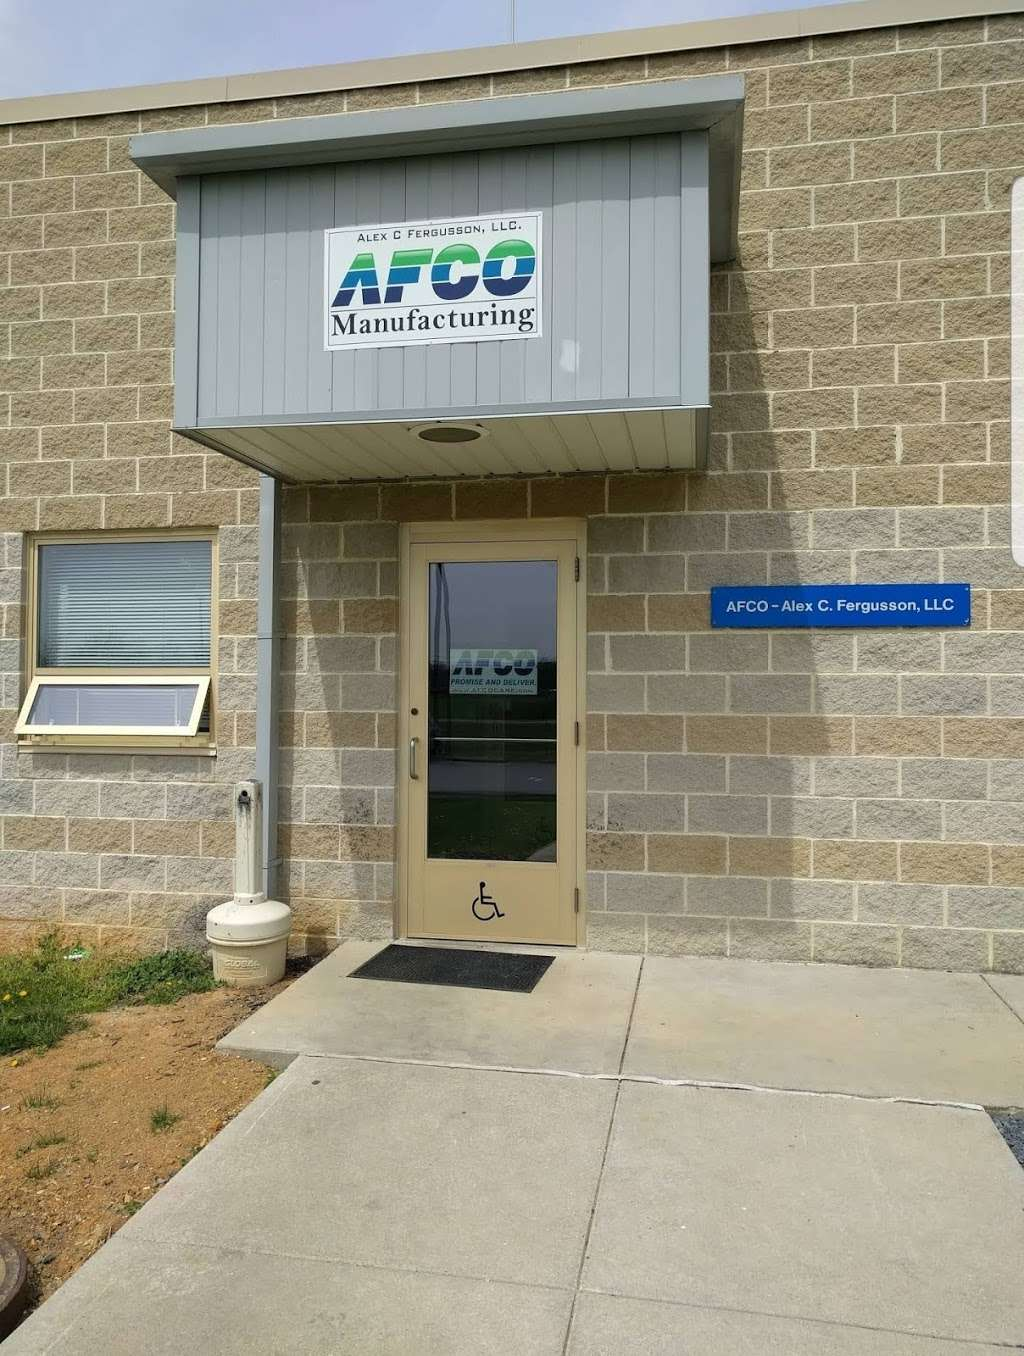 Afco Training Ctr - school  | Photo 1 of 1 | Address: 2-298 Development Ave, Chambersburg, PA 17201, USA | Phone: (800) 345-1329